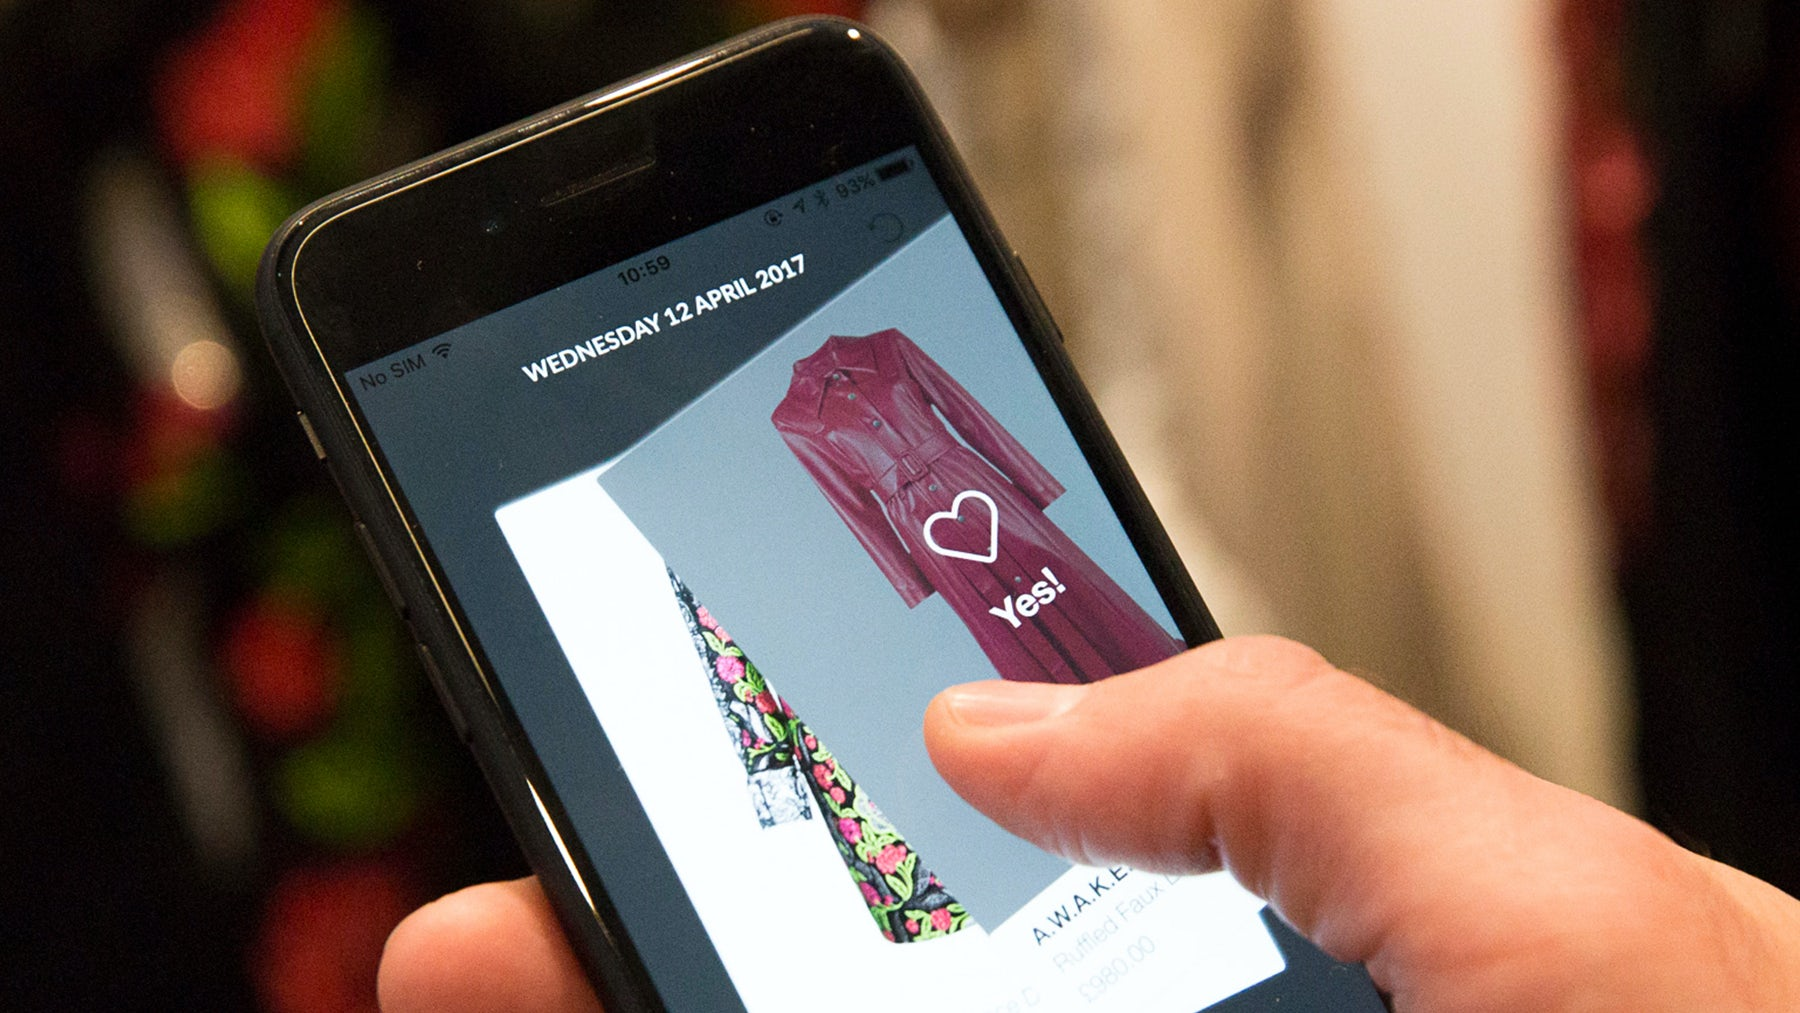 Why Farfetch's Free-Spending Ways Have Some Investors Concerned